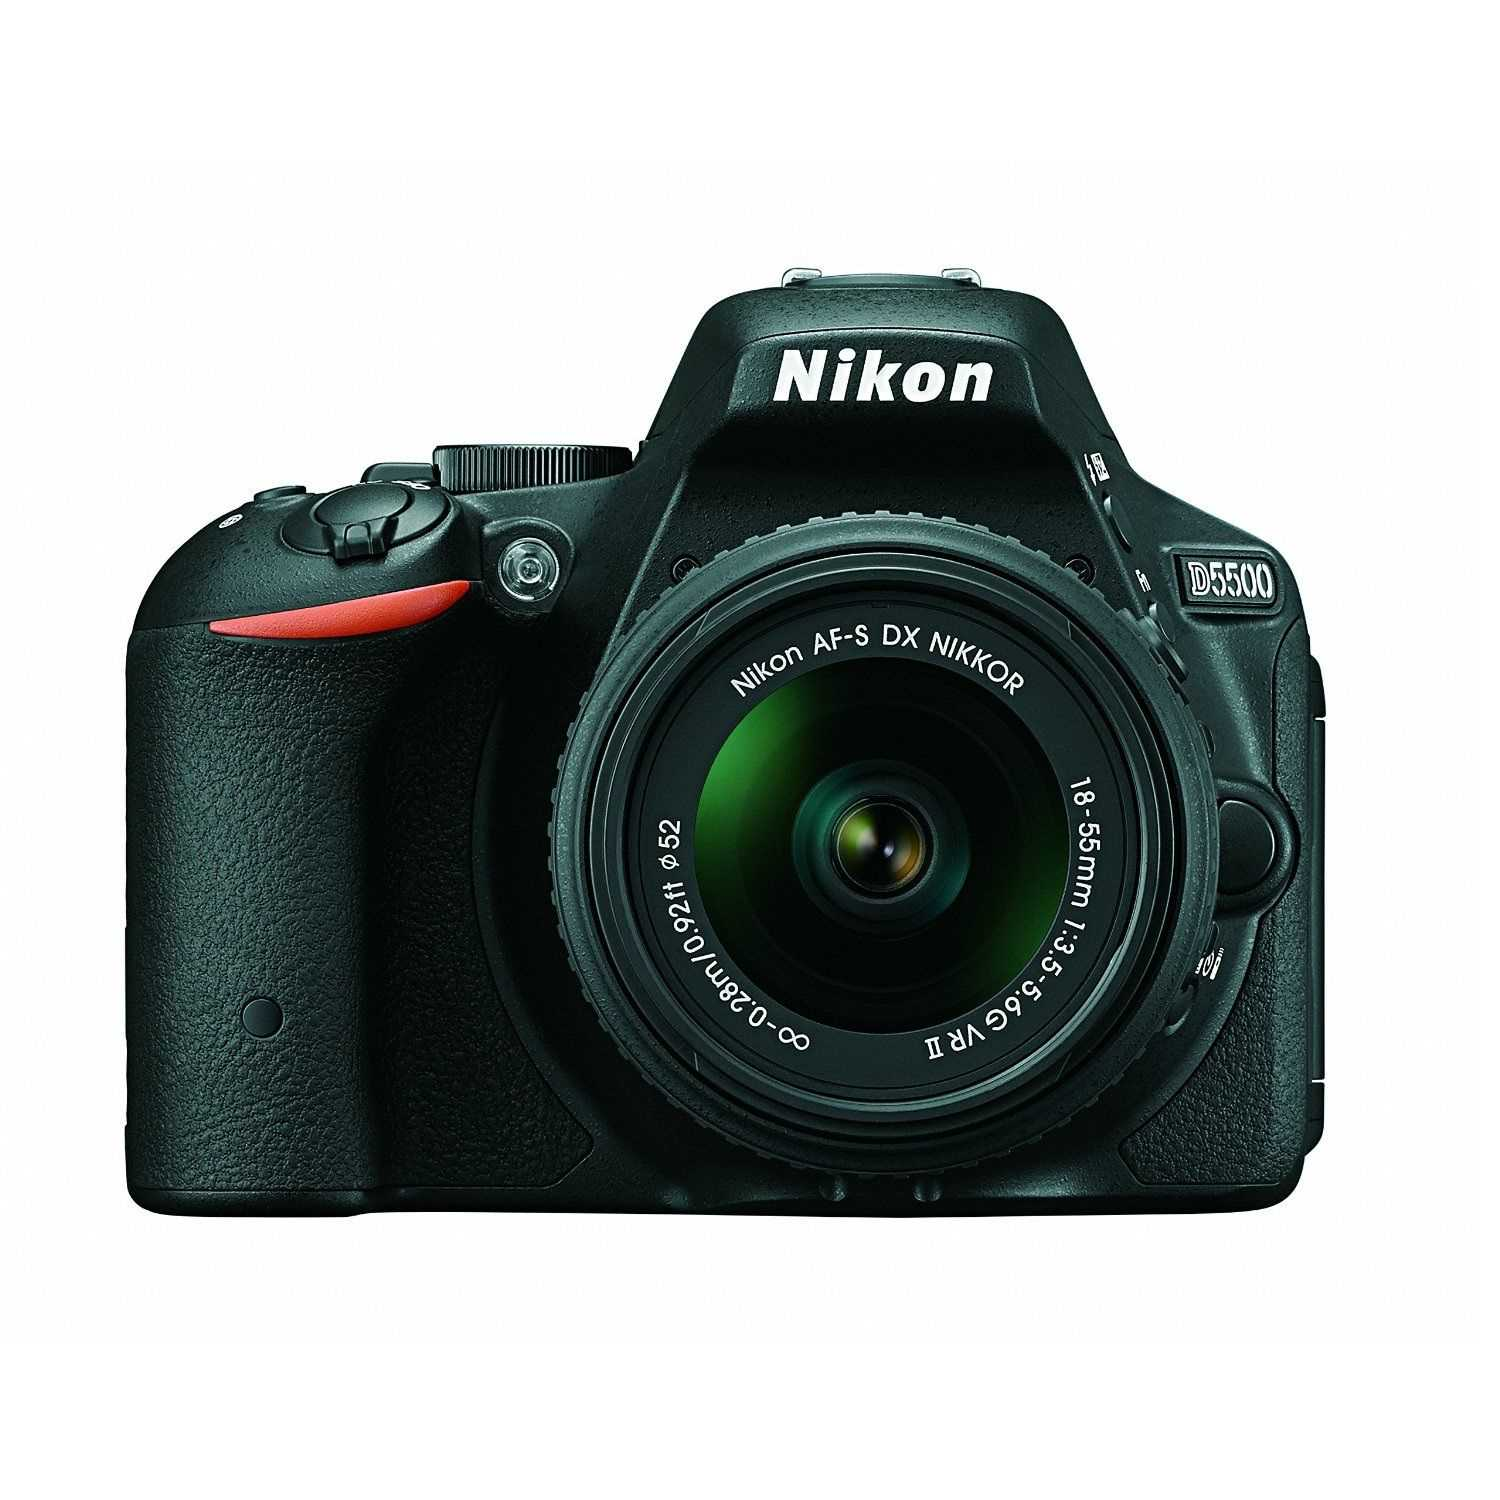 Camera Nikon Dslr Camera Models With Price nikon camera price list in india 2017 lowest prices d5500 18 55 mm lens